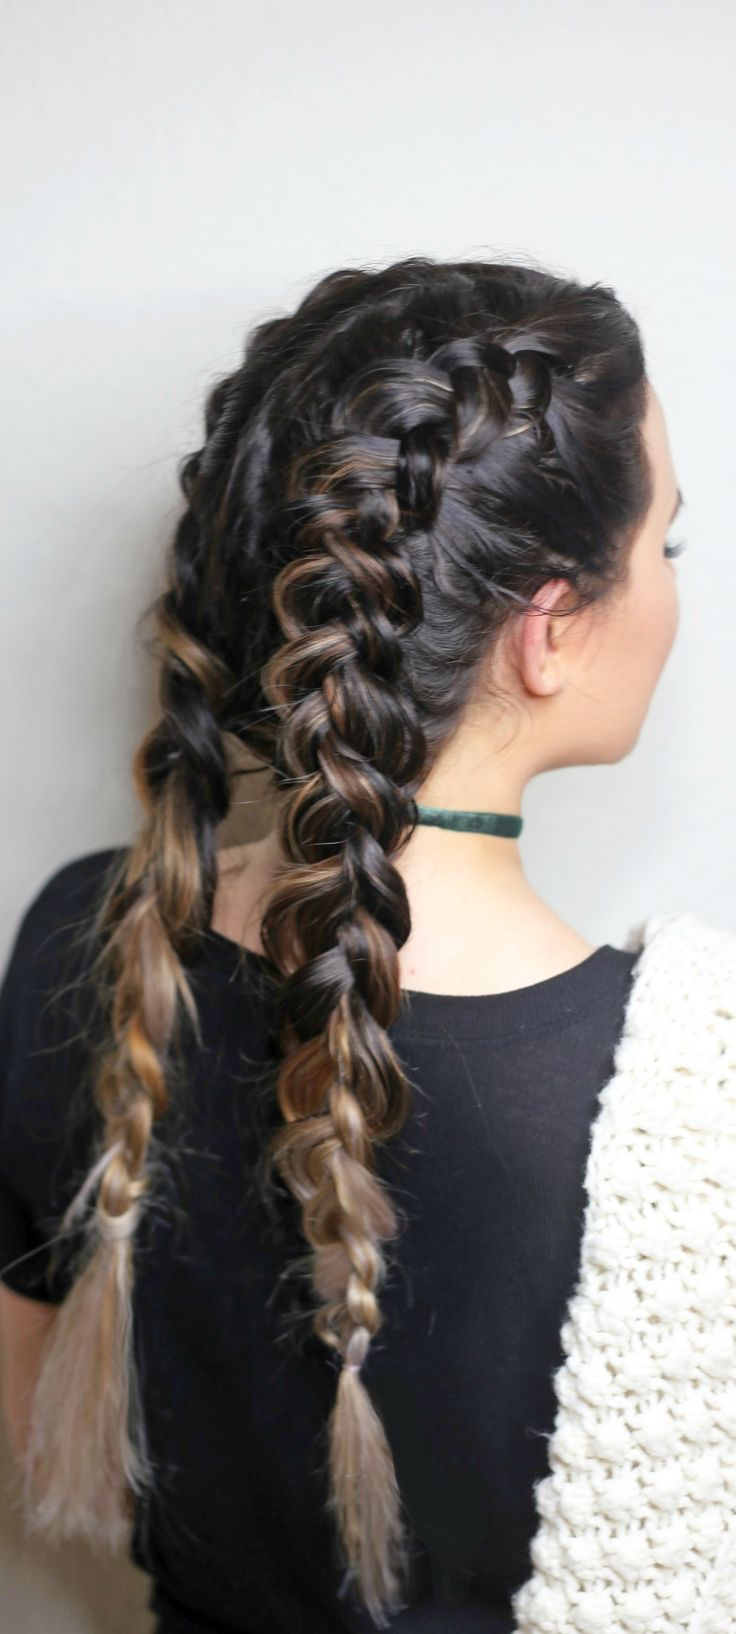 Best 20+ French Braids Black Hair Ideas On Pinterest  Black Braid Styles,  2 Cornrow Braids And Black Braids